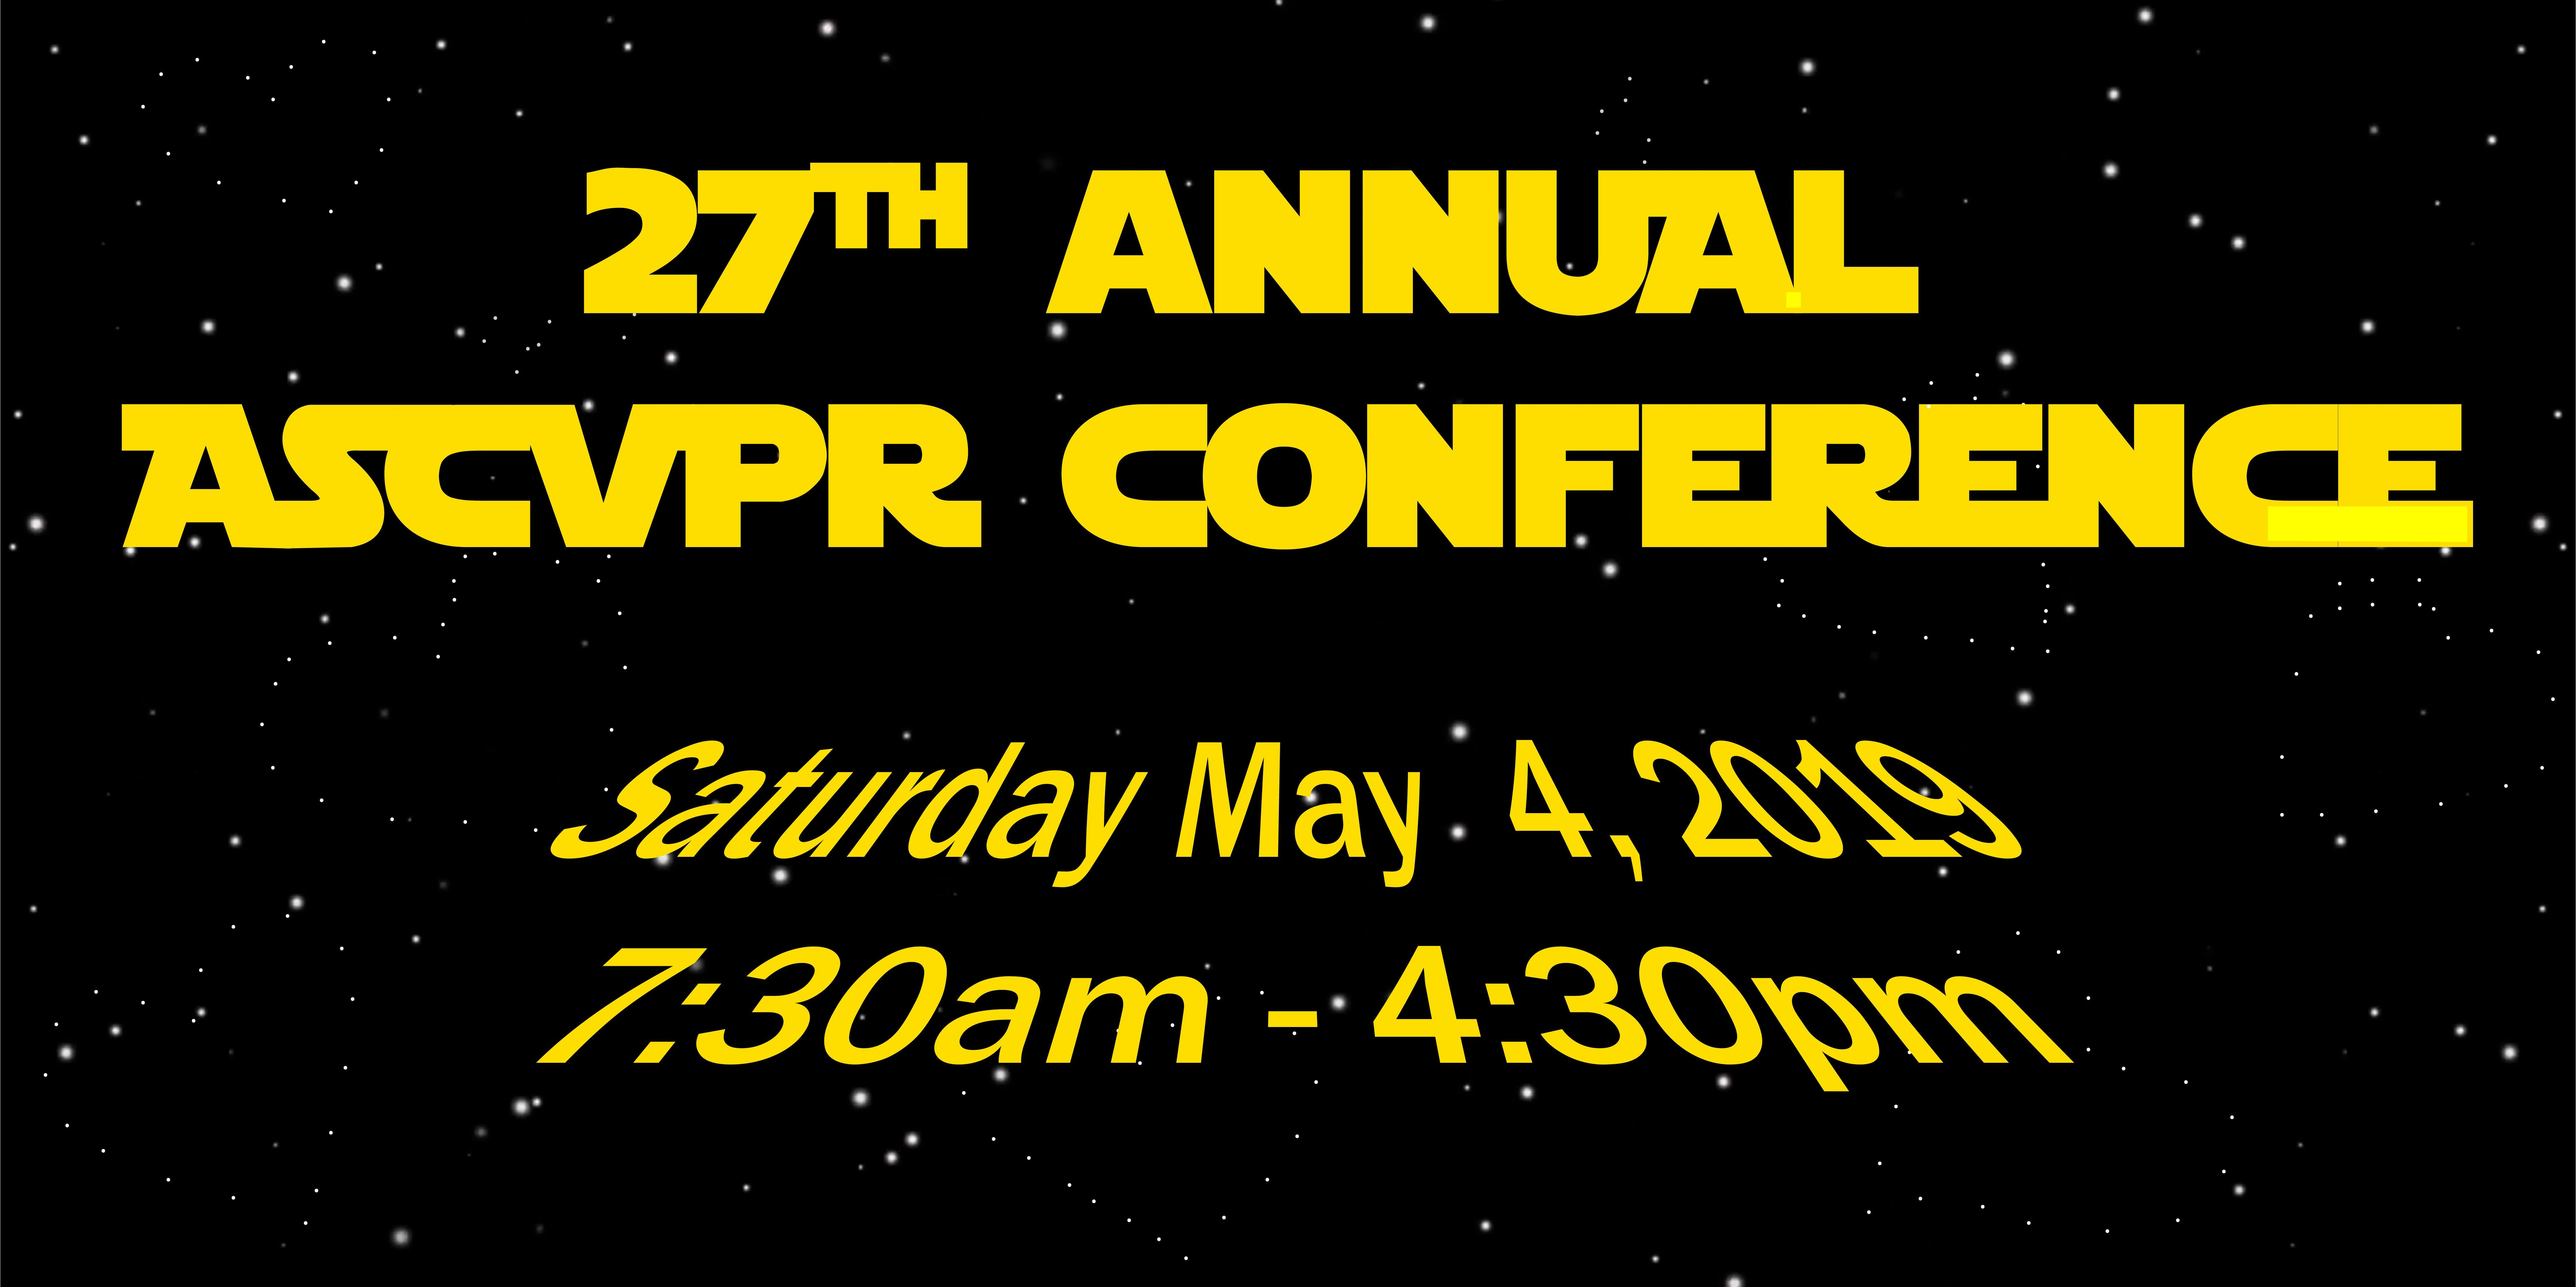 27th Annual ASCVPR Conference